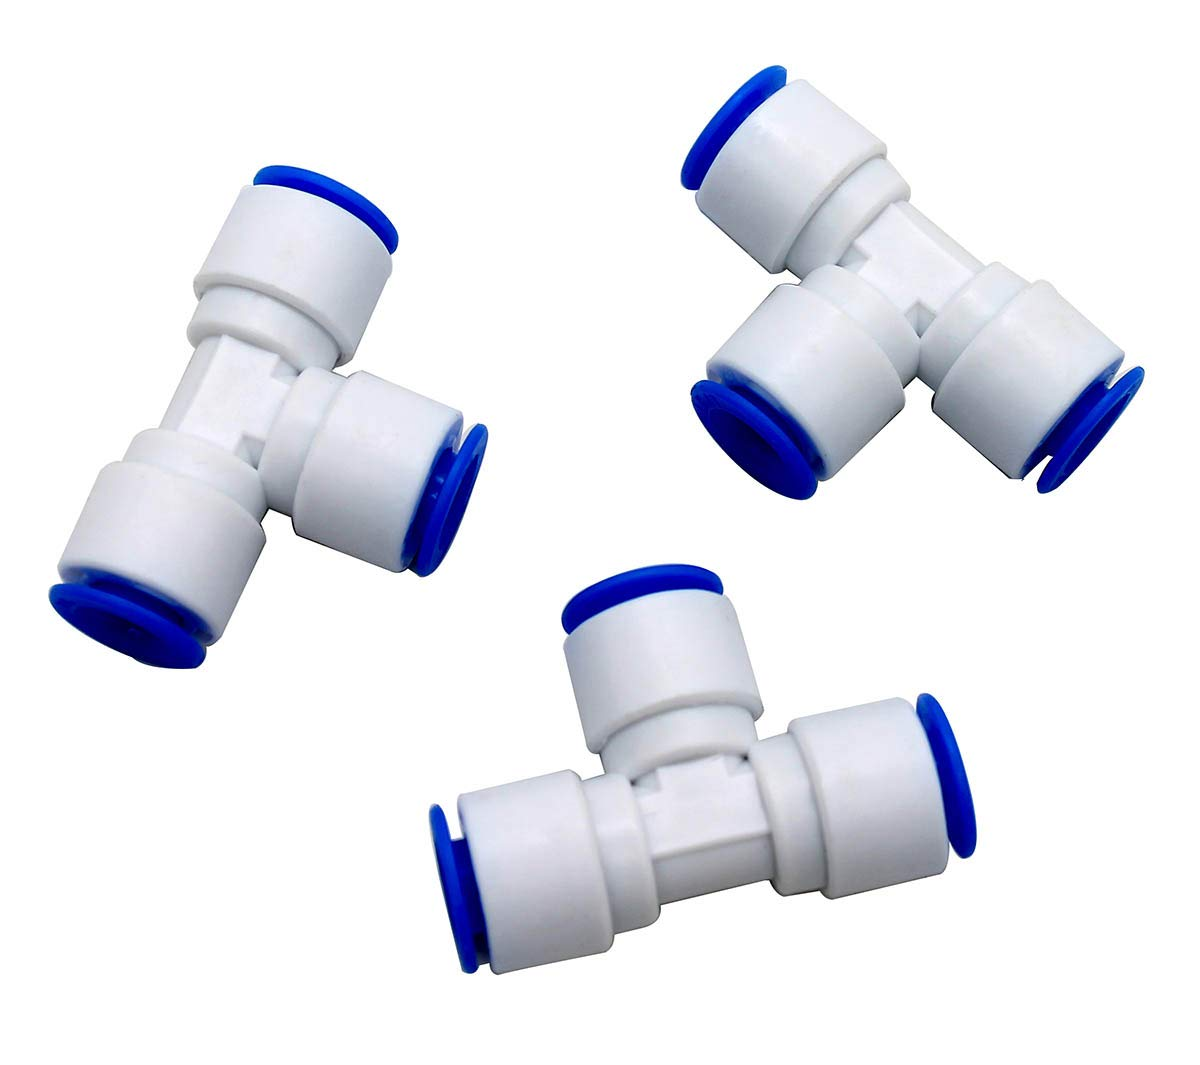 30 PCS Quick Connect Water Tube Fitting Push in to Connect Fitting for 1//4 in OD Water Tube